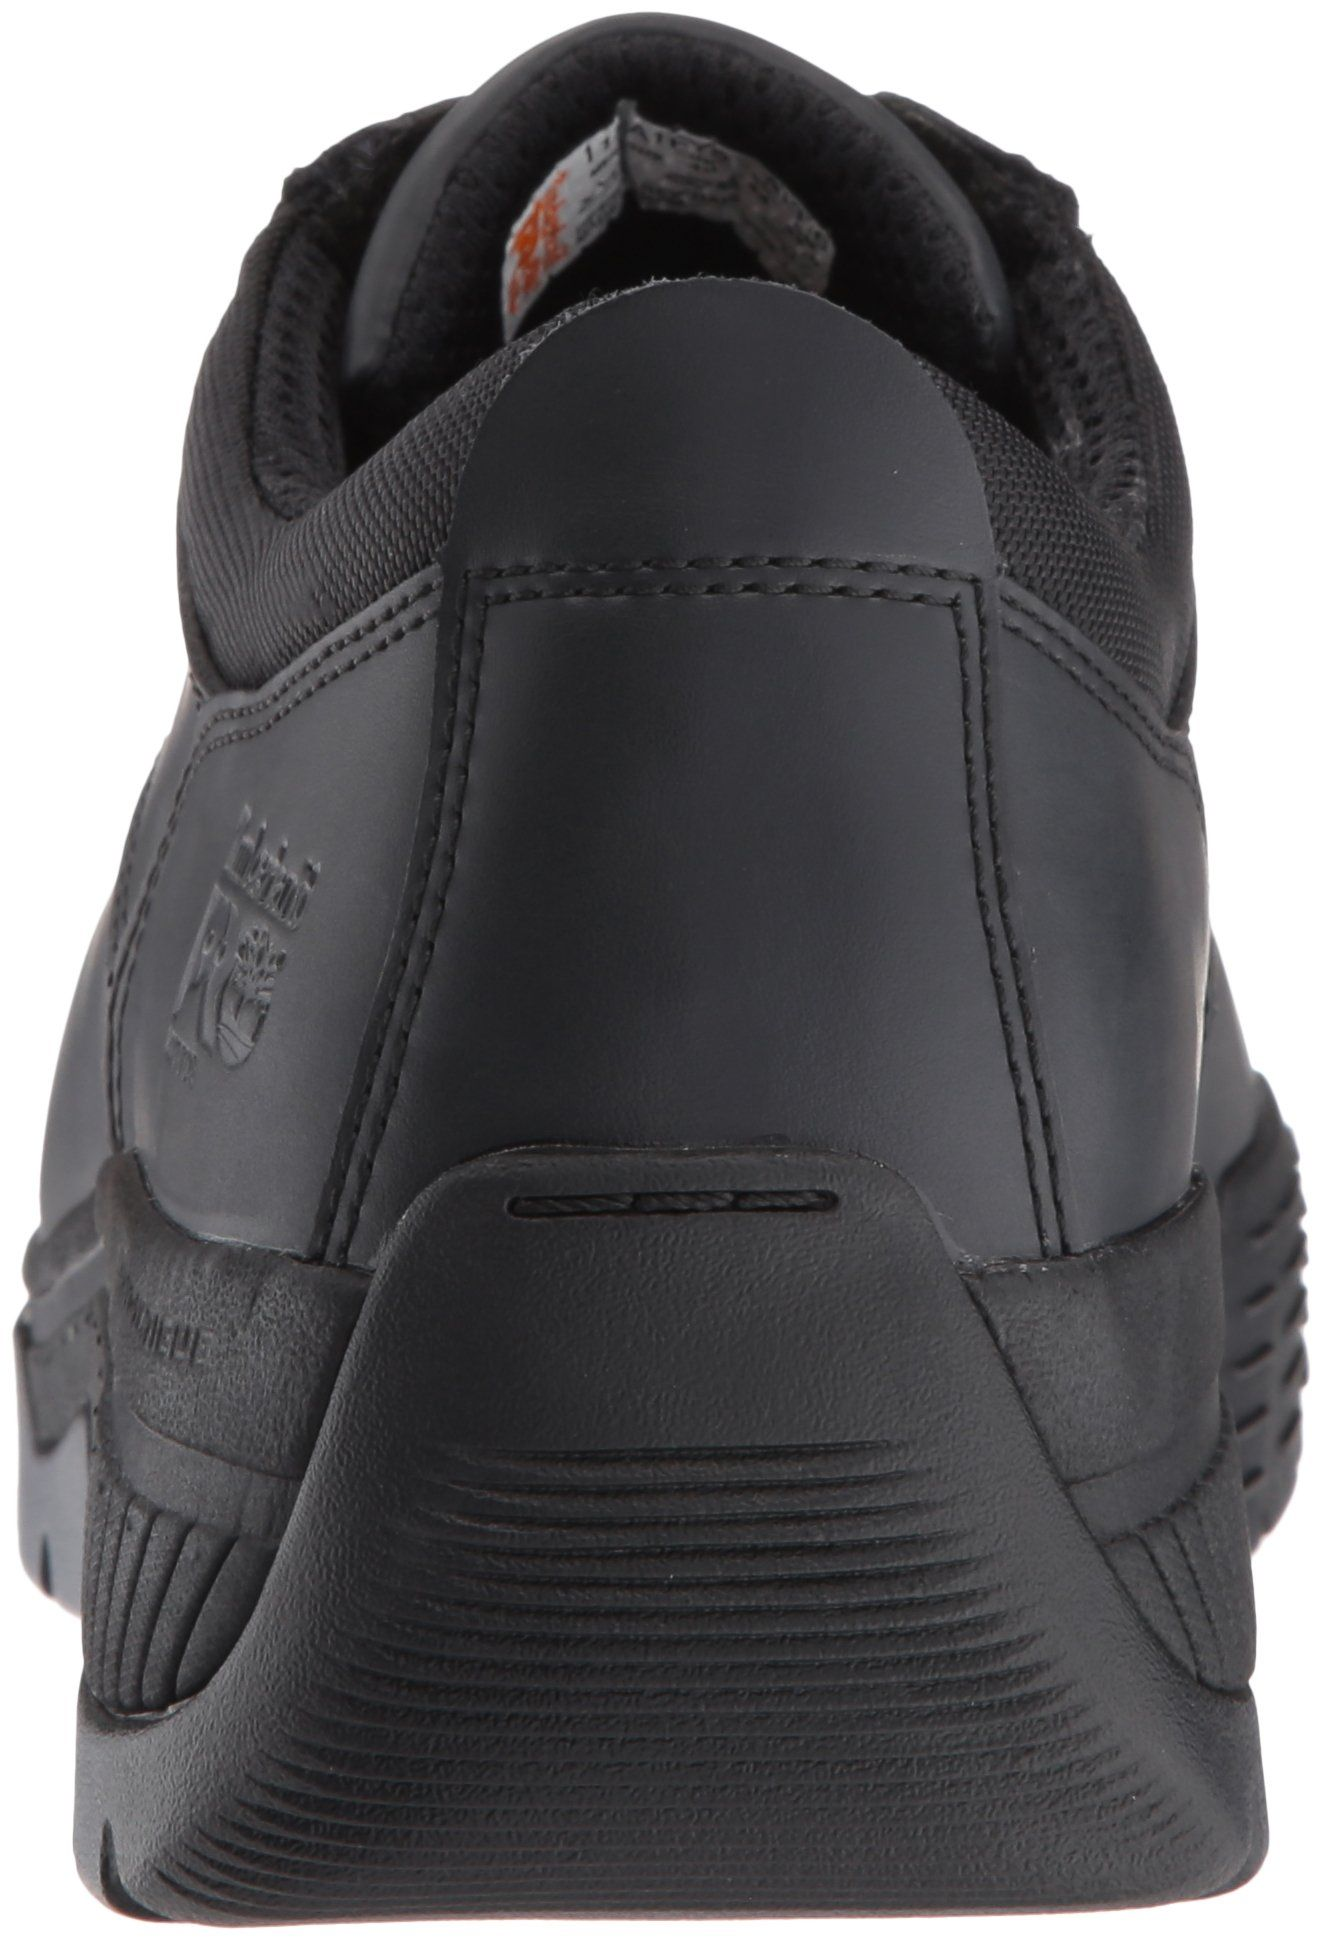 a96219c6a63 Timberland PRO Mens Valor Duty Soft Toe Oxford Military and Tactical ...